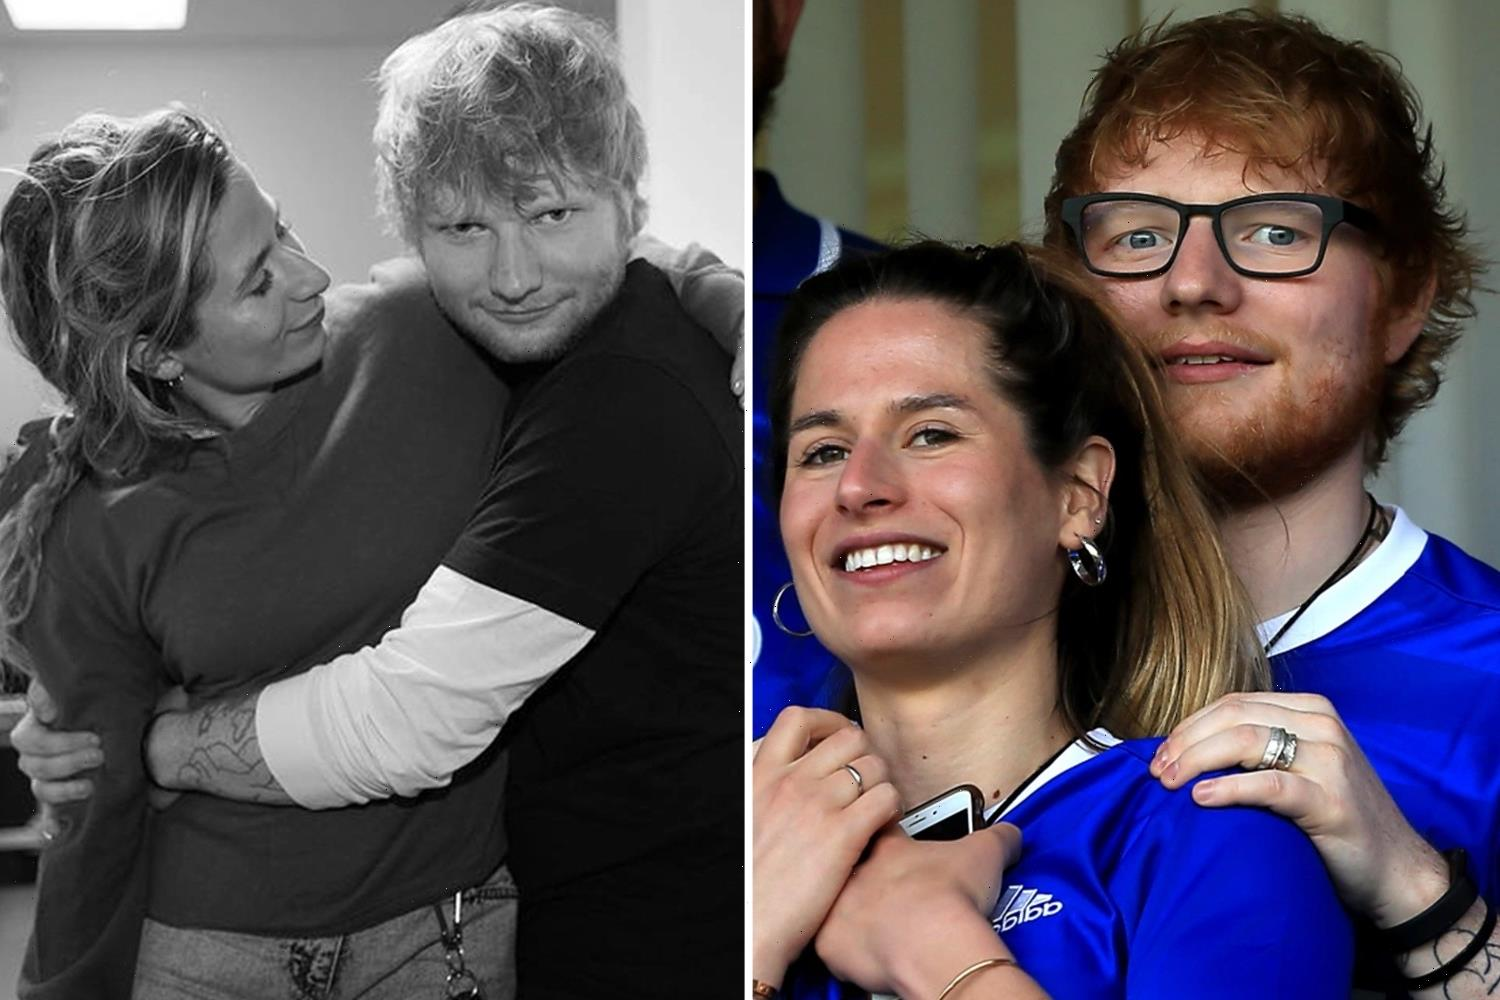 Inside Ed Sheeran's love story with childhood sweetheart Cherry Seaborn after falling for her when he was 11 years old